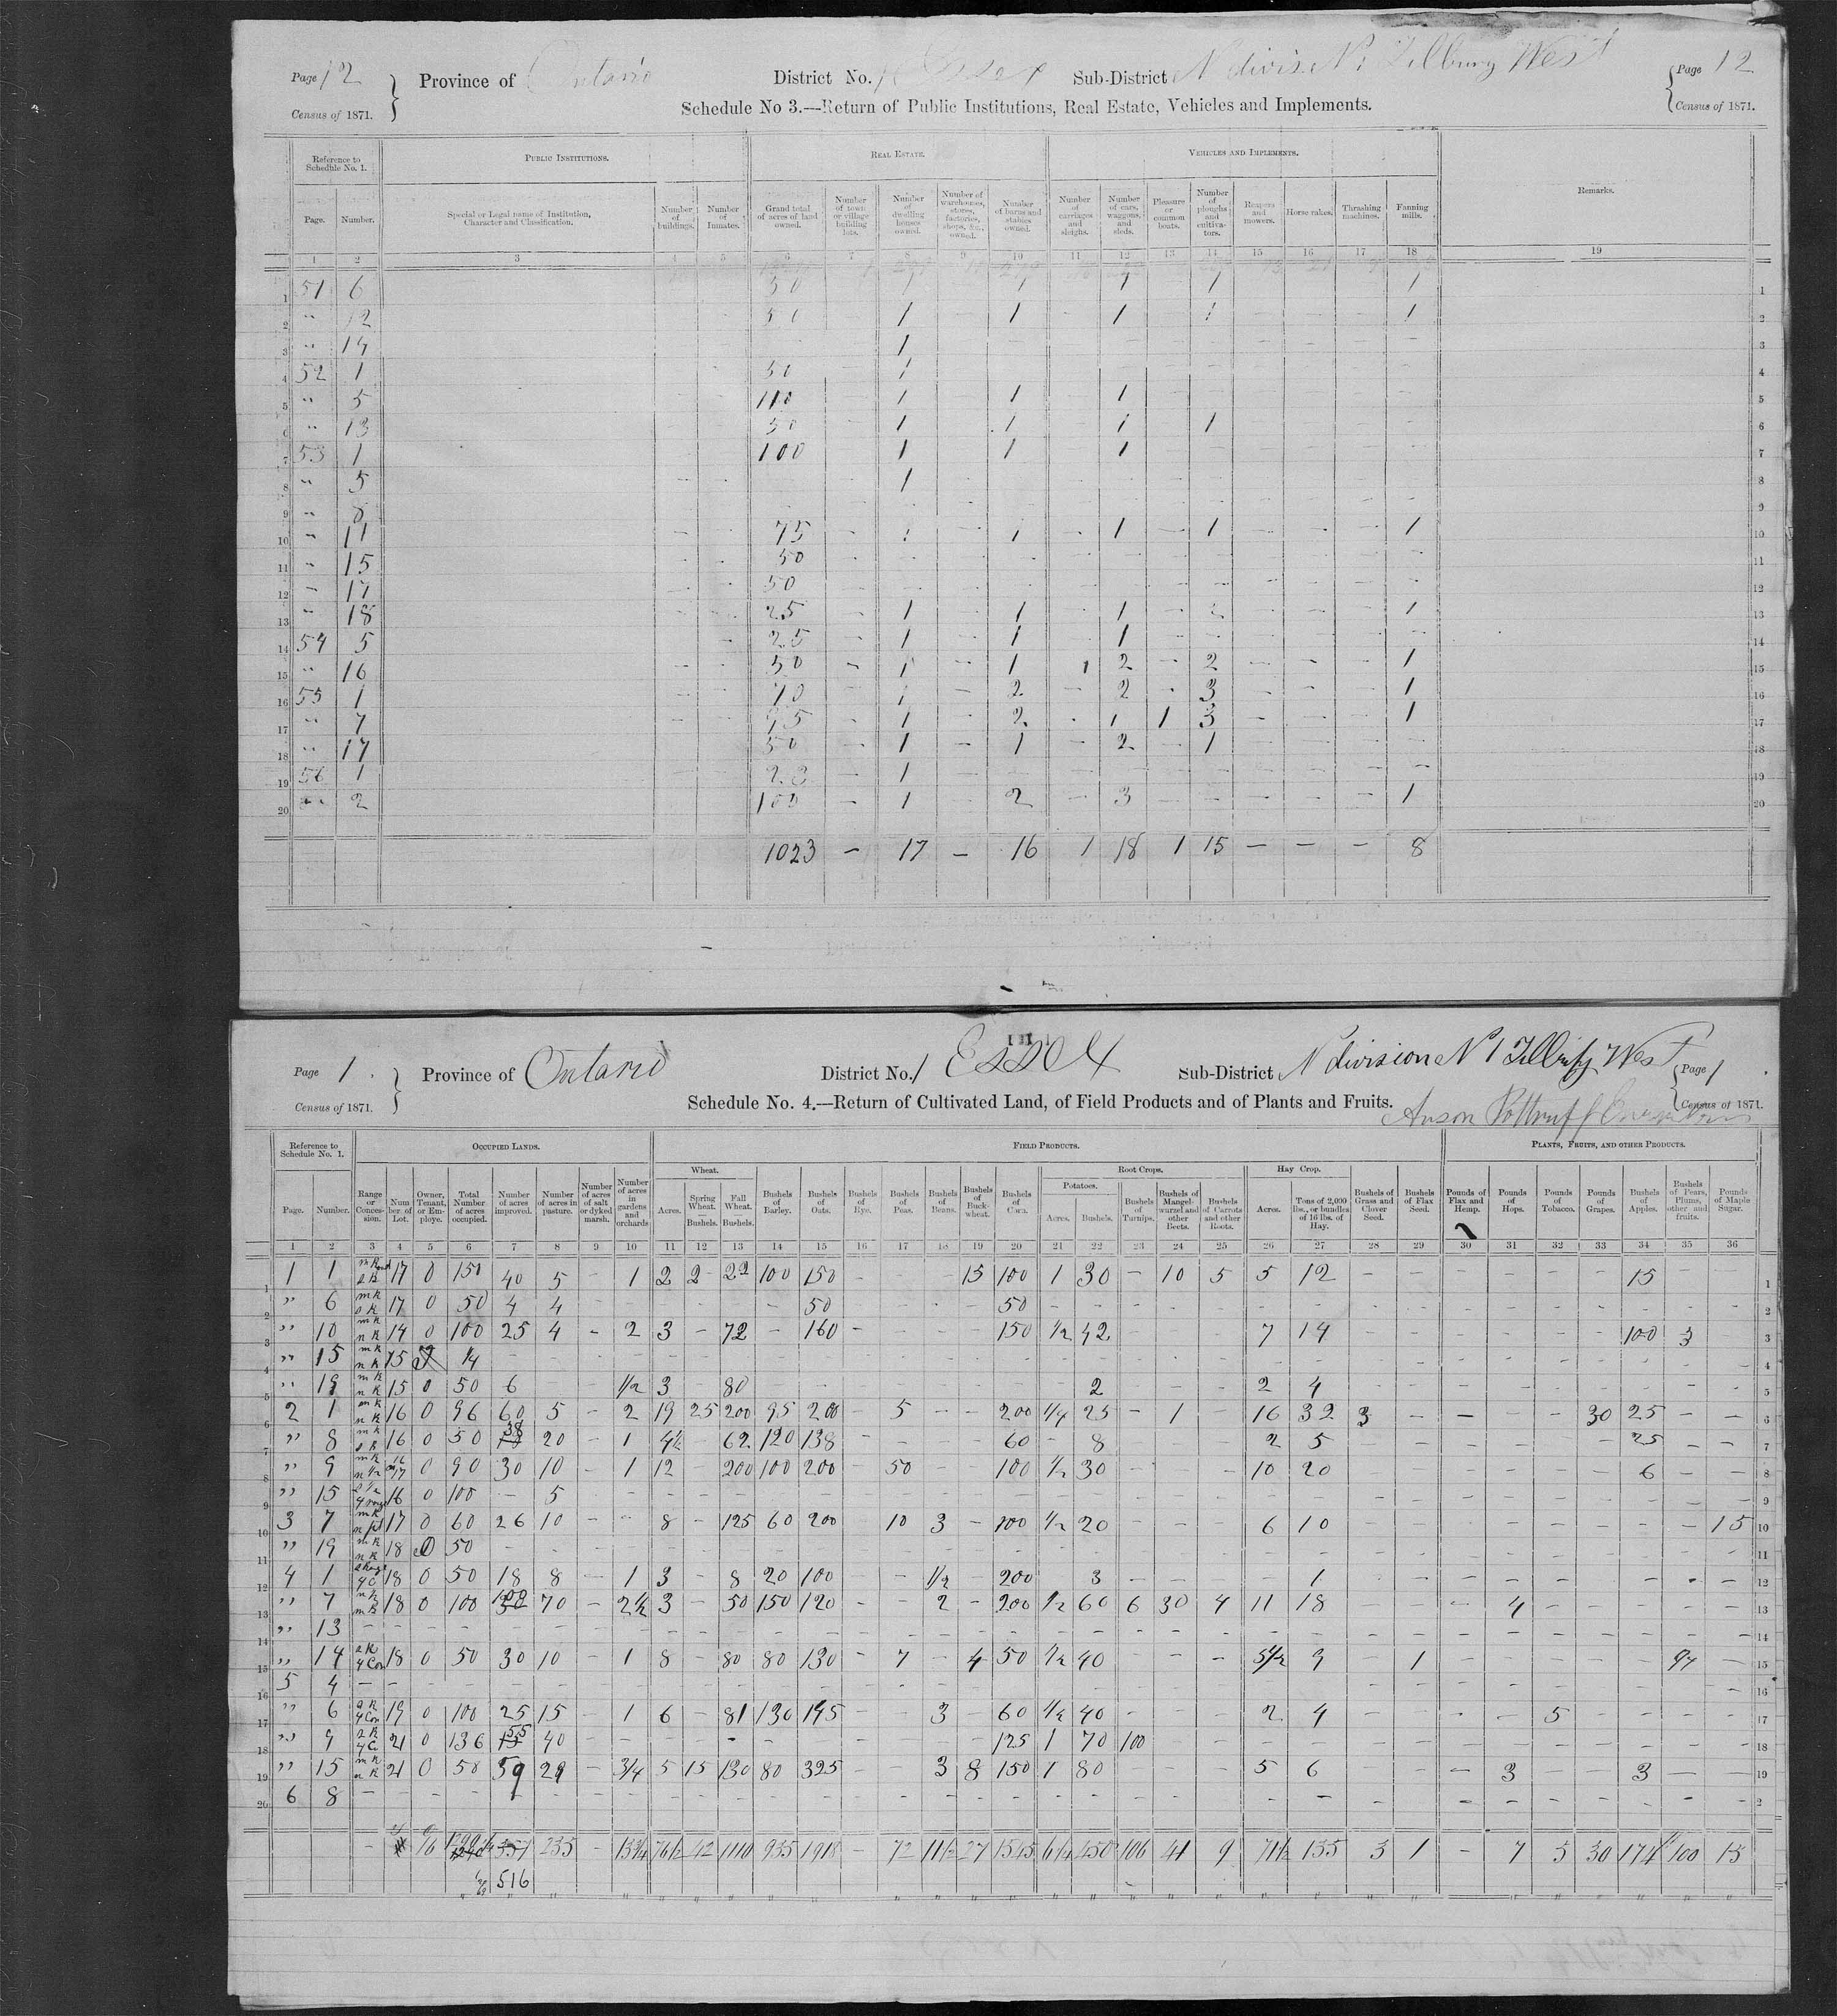 Title: Census of Canada, 1871 - Mikan Number: 142105 - Microform: c-9890